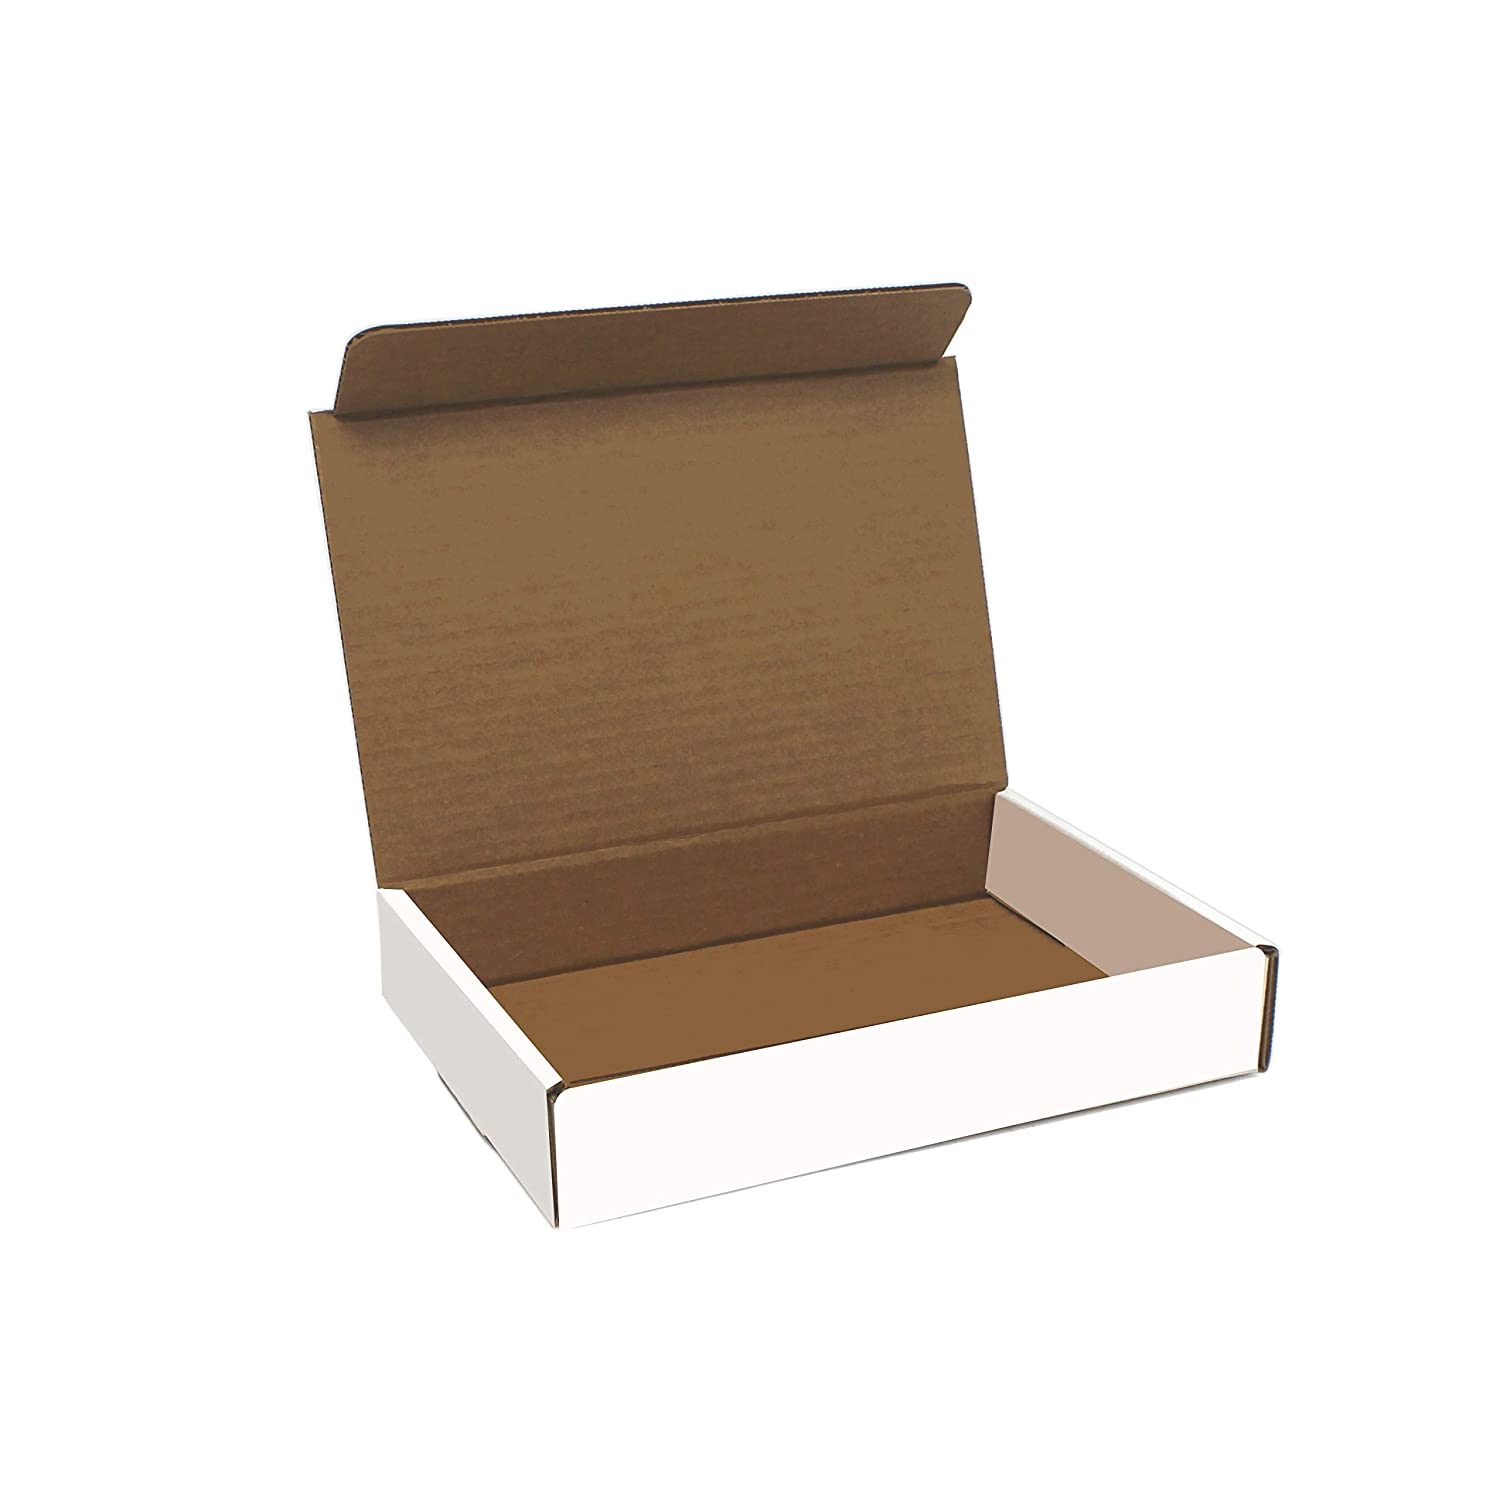 White Cardboard Shipping Box - Pack of 50, 9 x 6.5 x 1.75 Inches, White, Corrugated Box